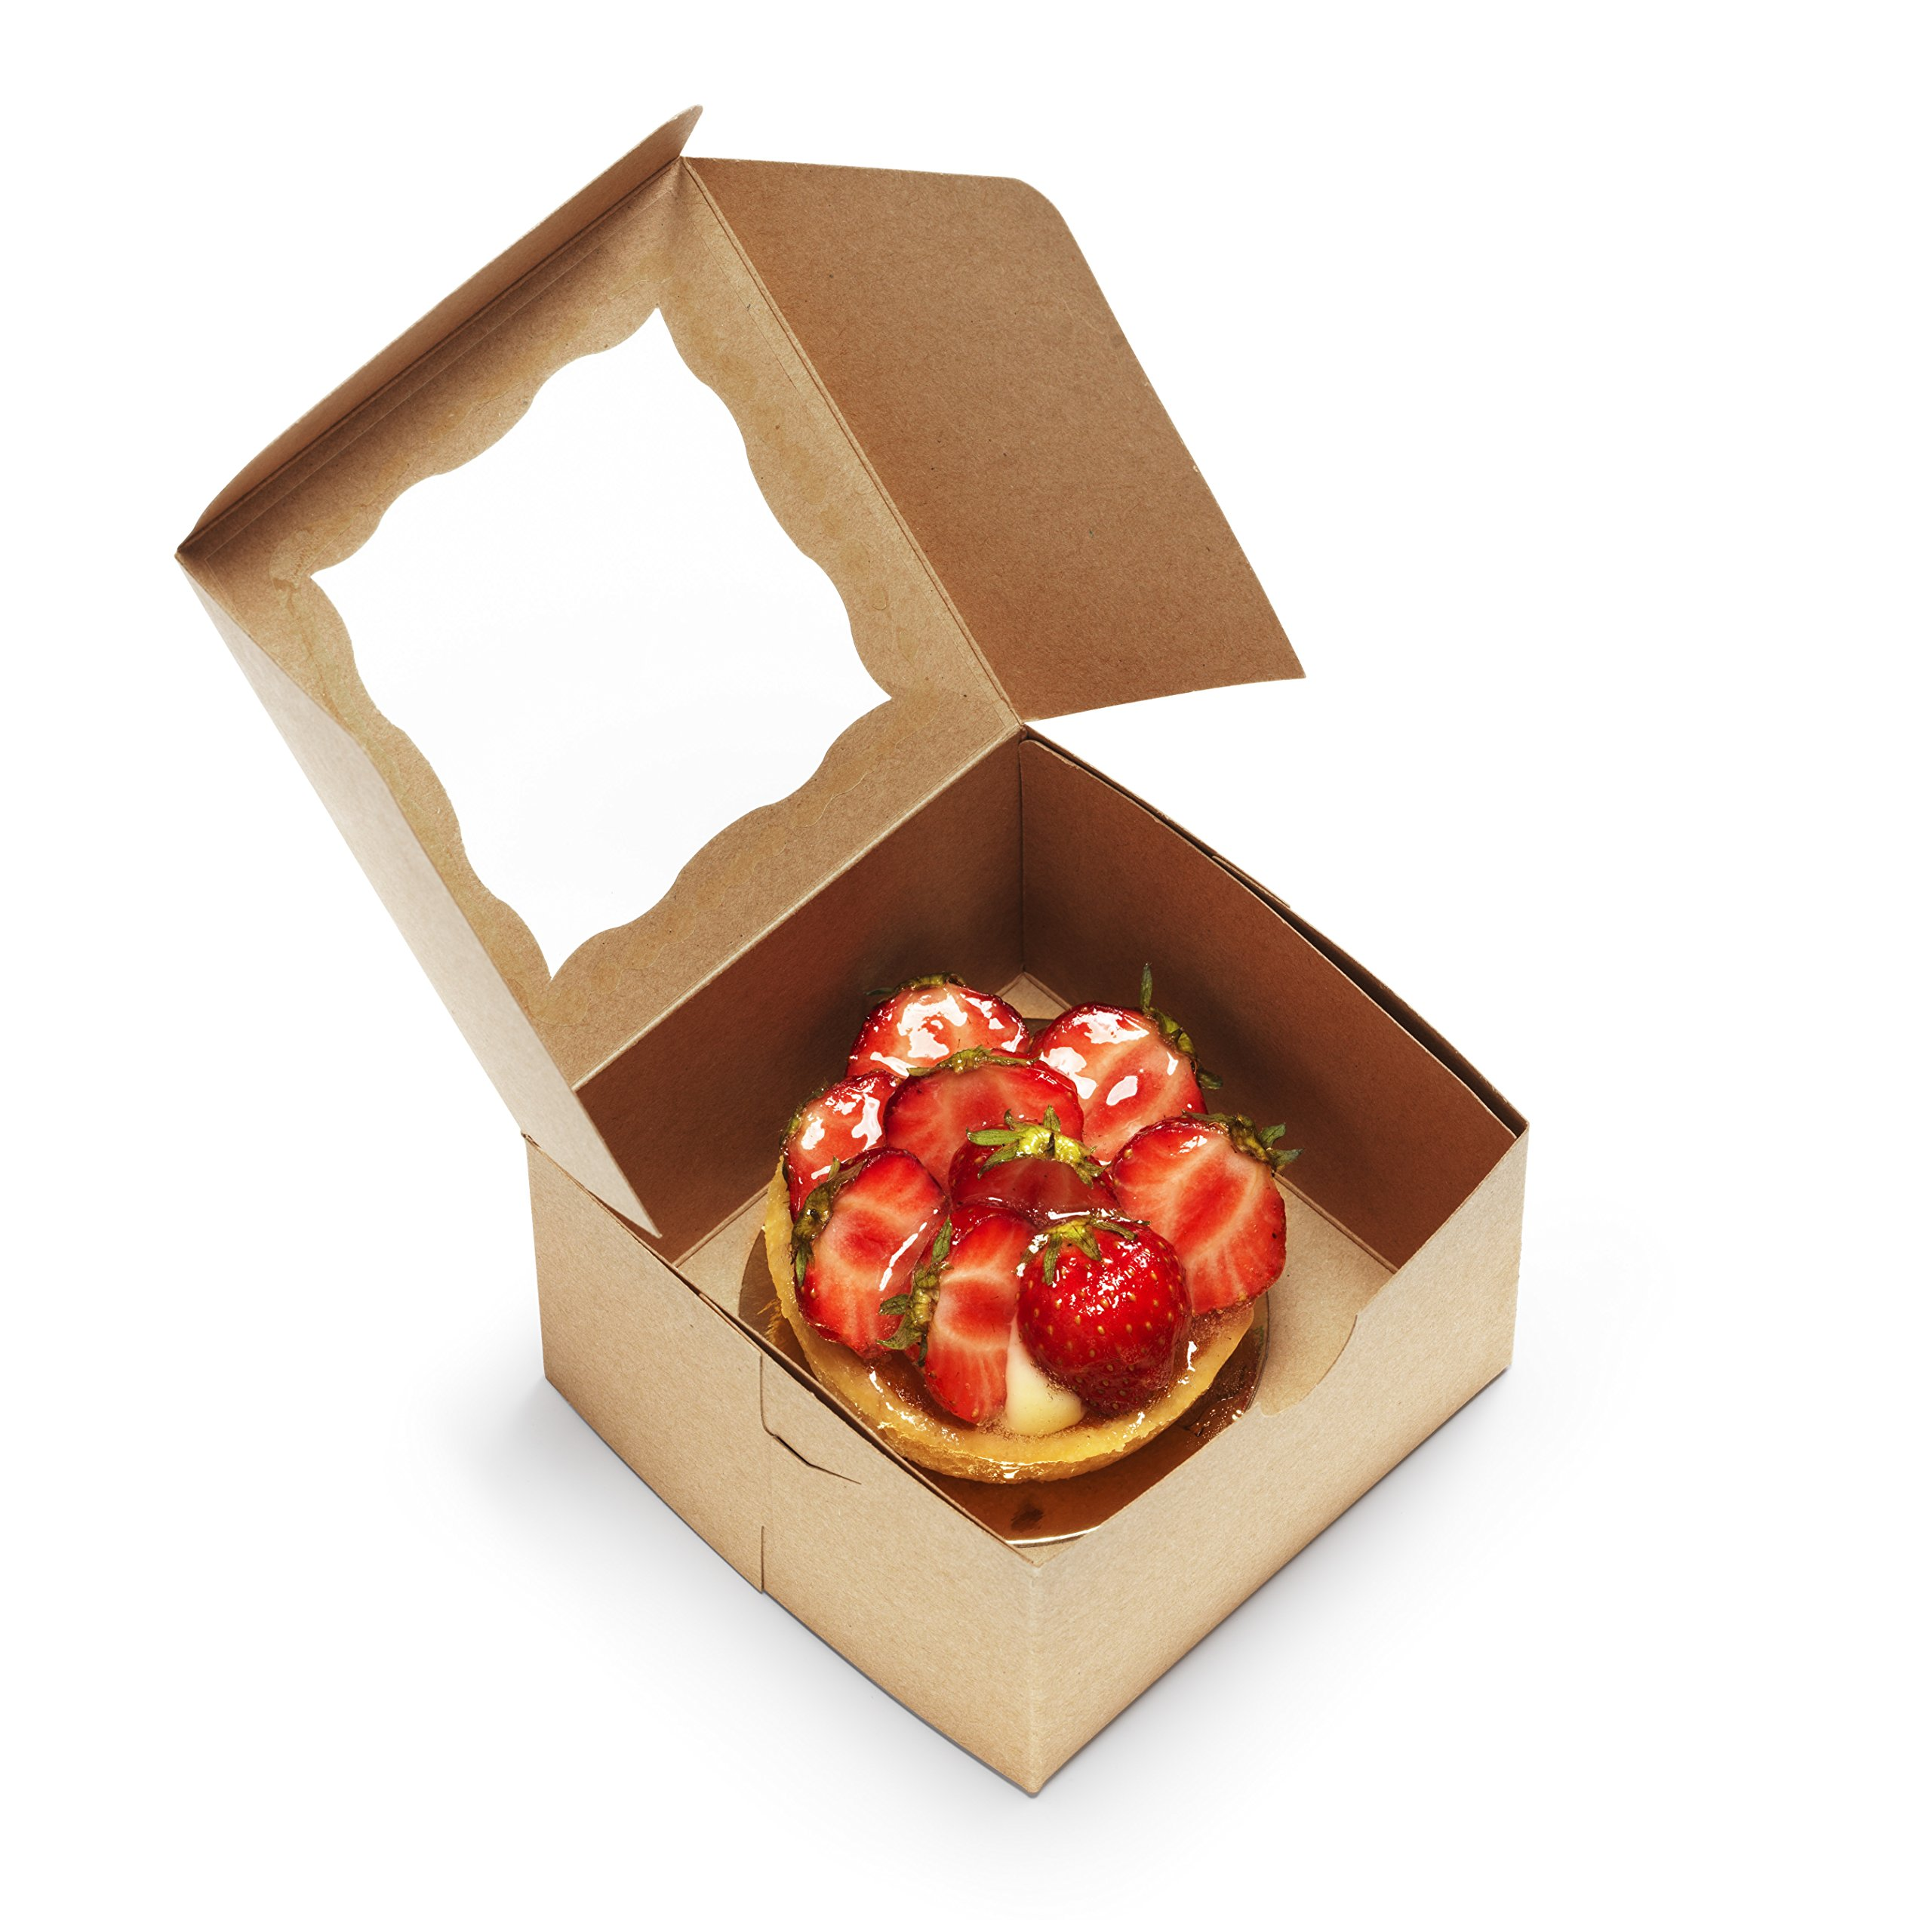 [50Pack] Bakery Boxes with Window 4x4x2.5'' Kraft Pastry Containers for Cupcakes, Wedding Cake/Baby Shower/Treat Party Favors, Dessert, Candy, Cookies